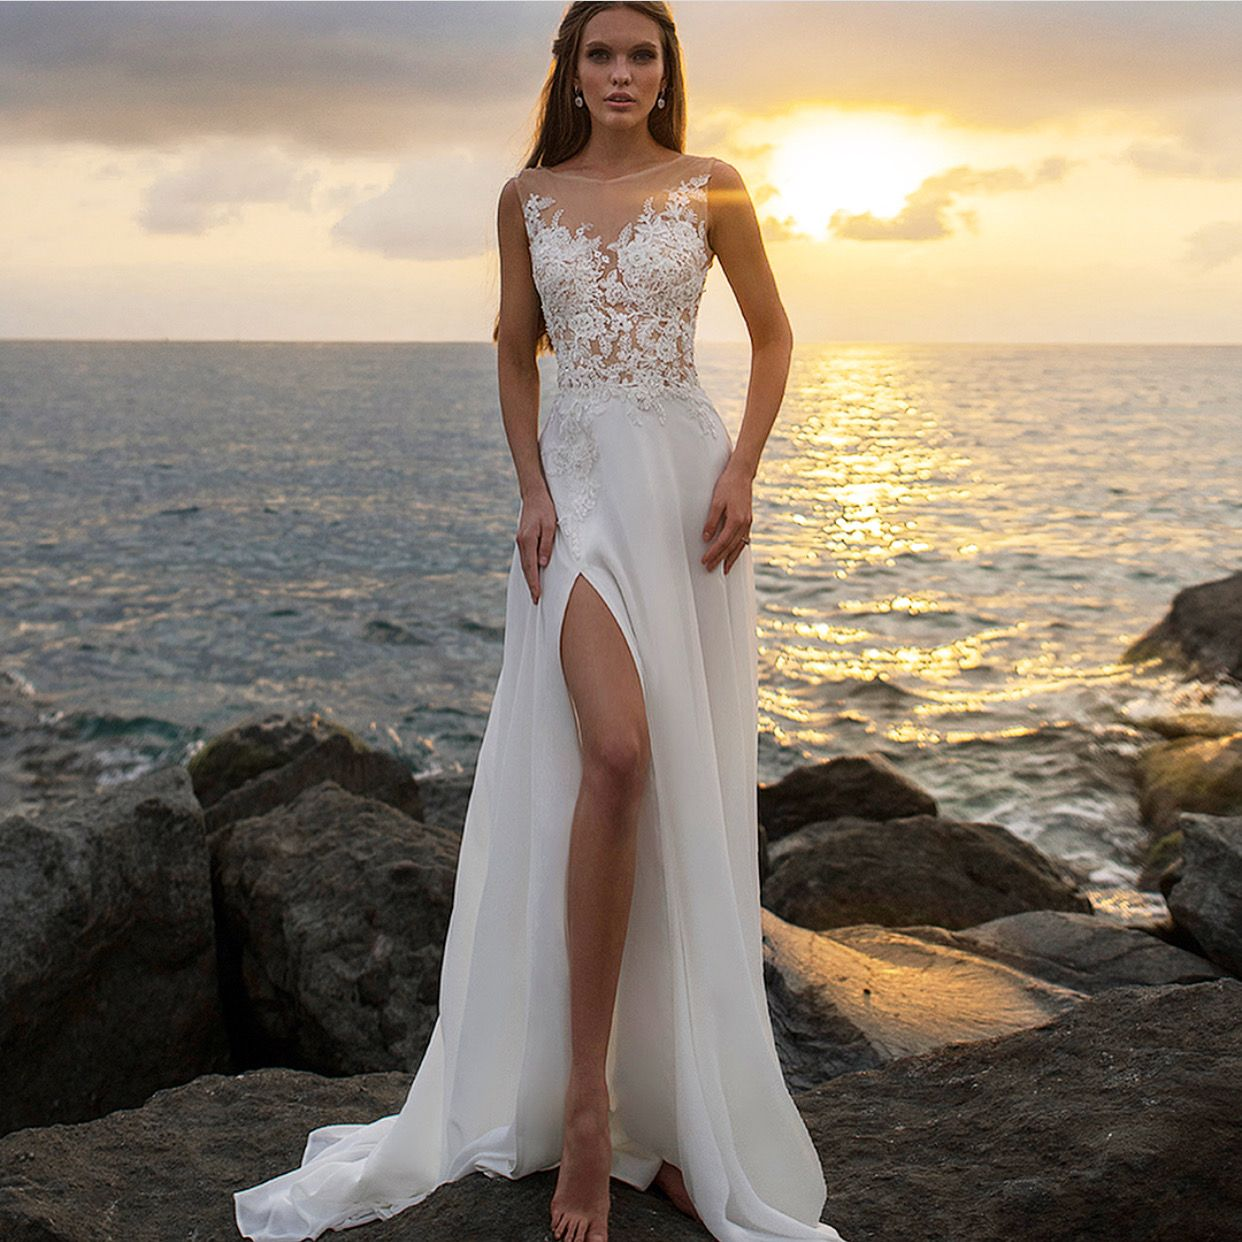 Pin By Izardel On Vestidos Beach Wedding Gown Wedding Dresses Bride Dress